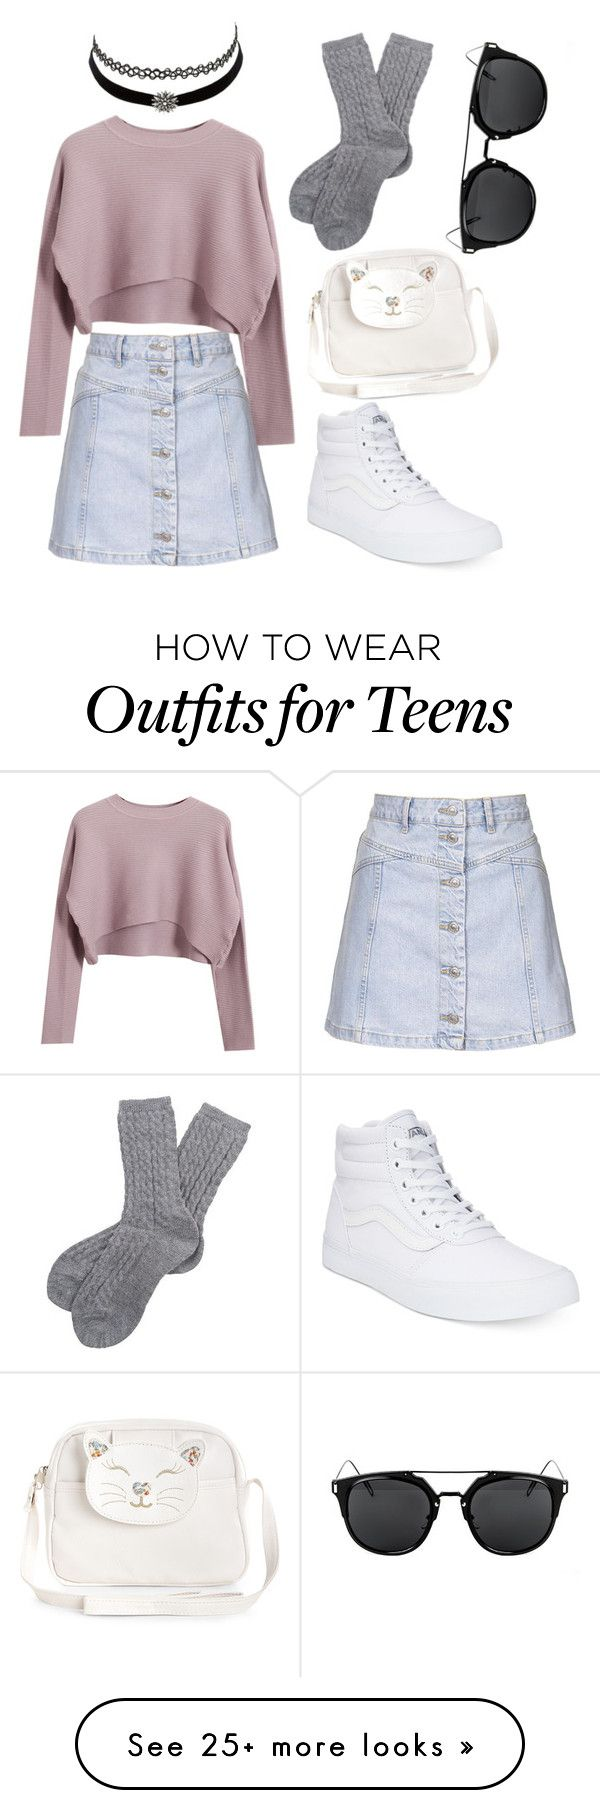 """""""Teens spirit"""" by scatterbrain69 on Polyvore featuring Topshop, Charlotte Russe, Vans, Chicnova Fashion, Barbour and Monsoon"""